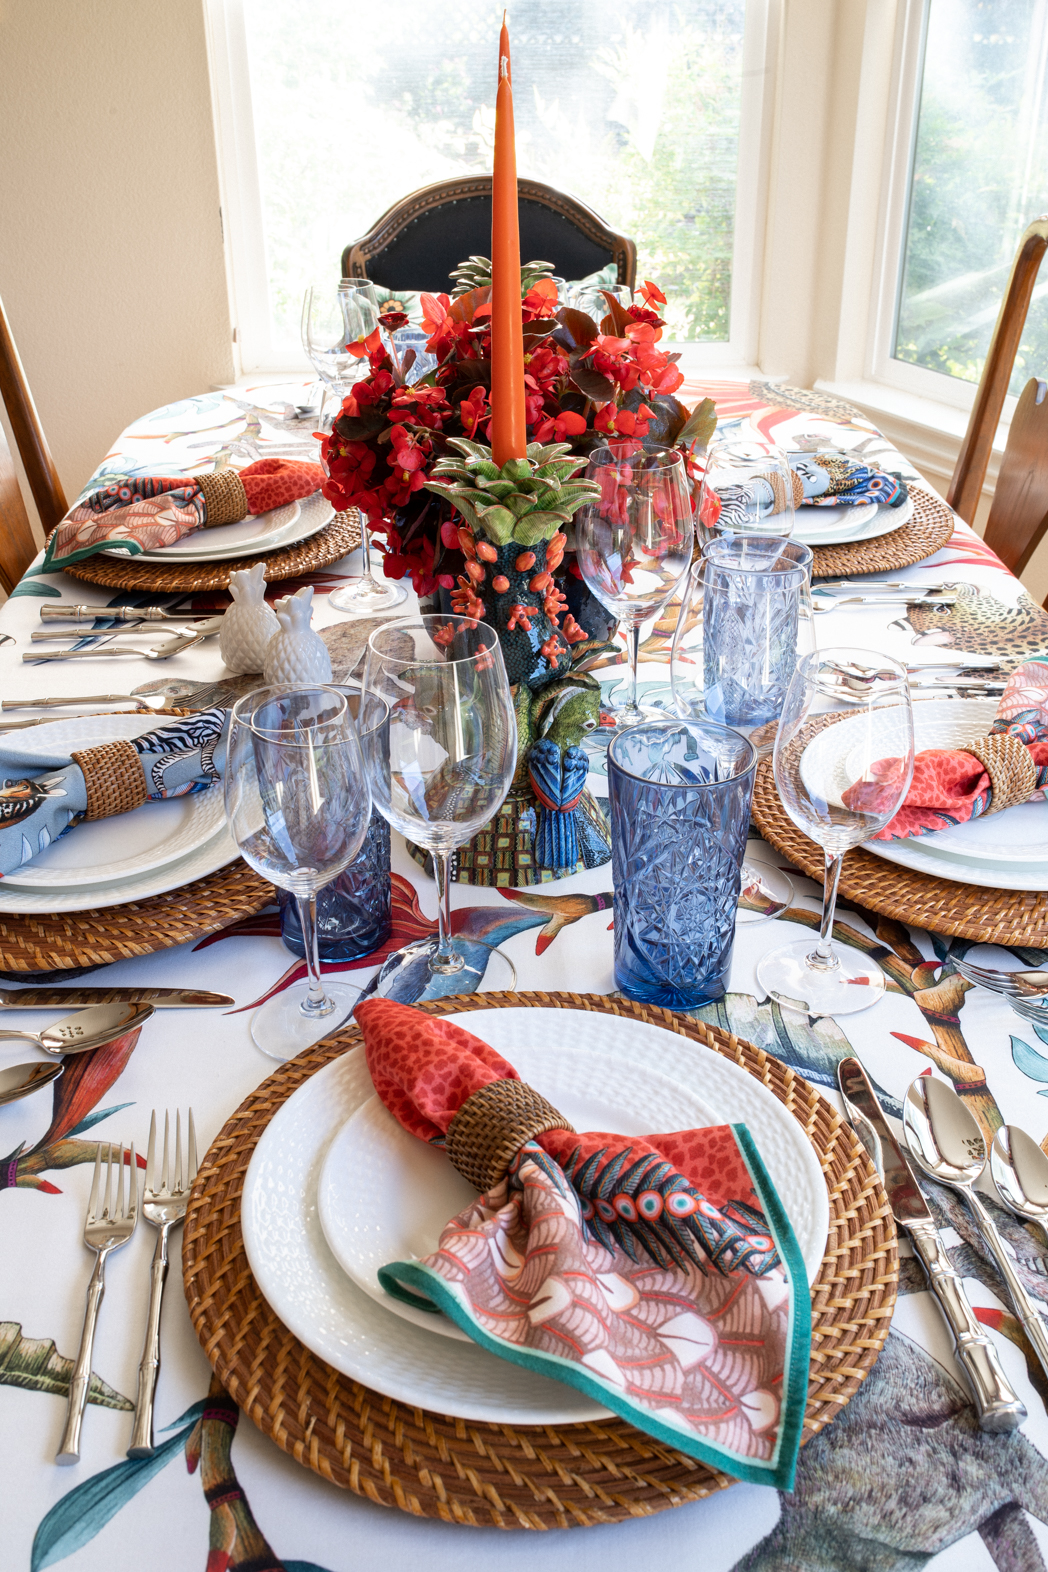 Stacie Flinner Ardmore Table Setting-57.jpg